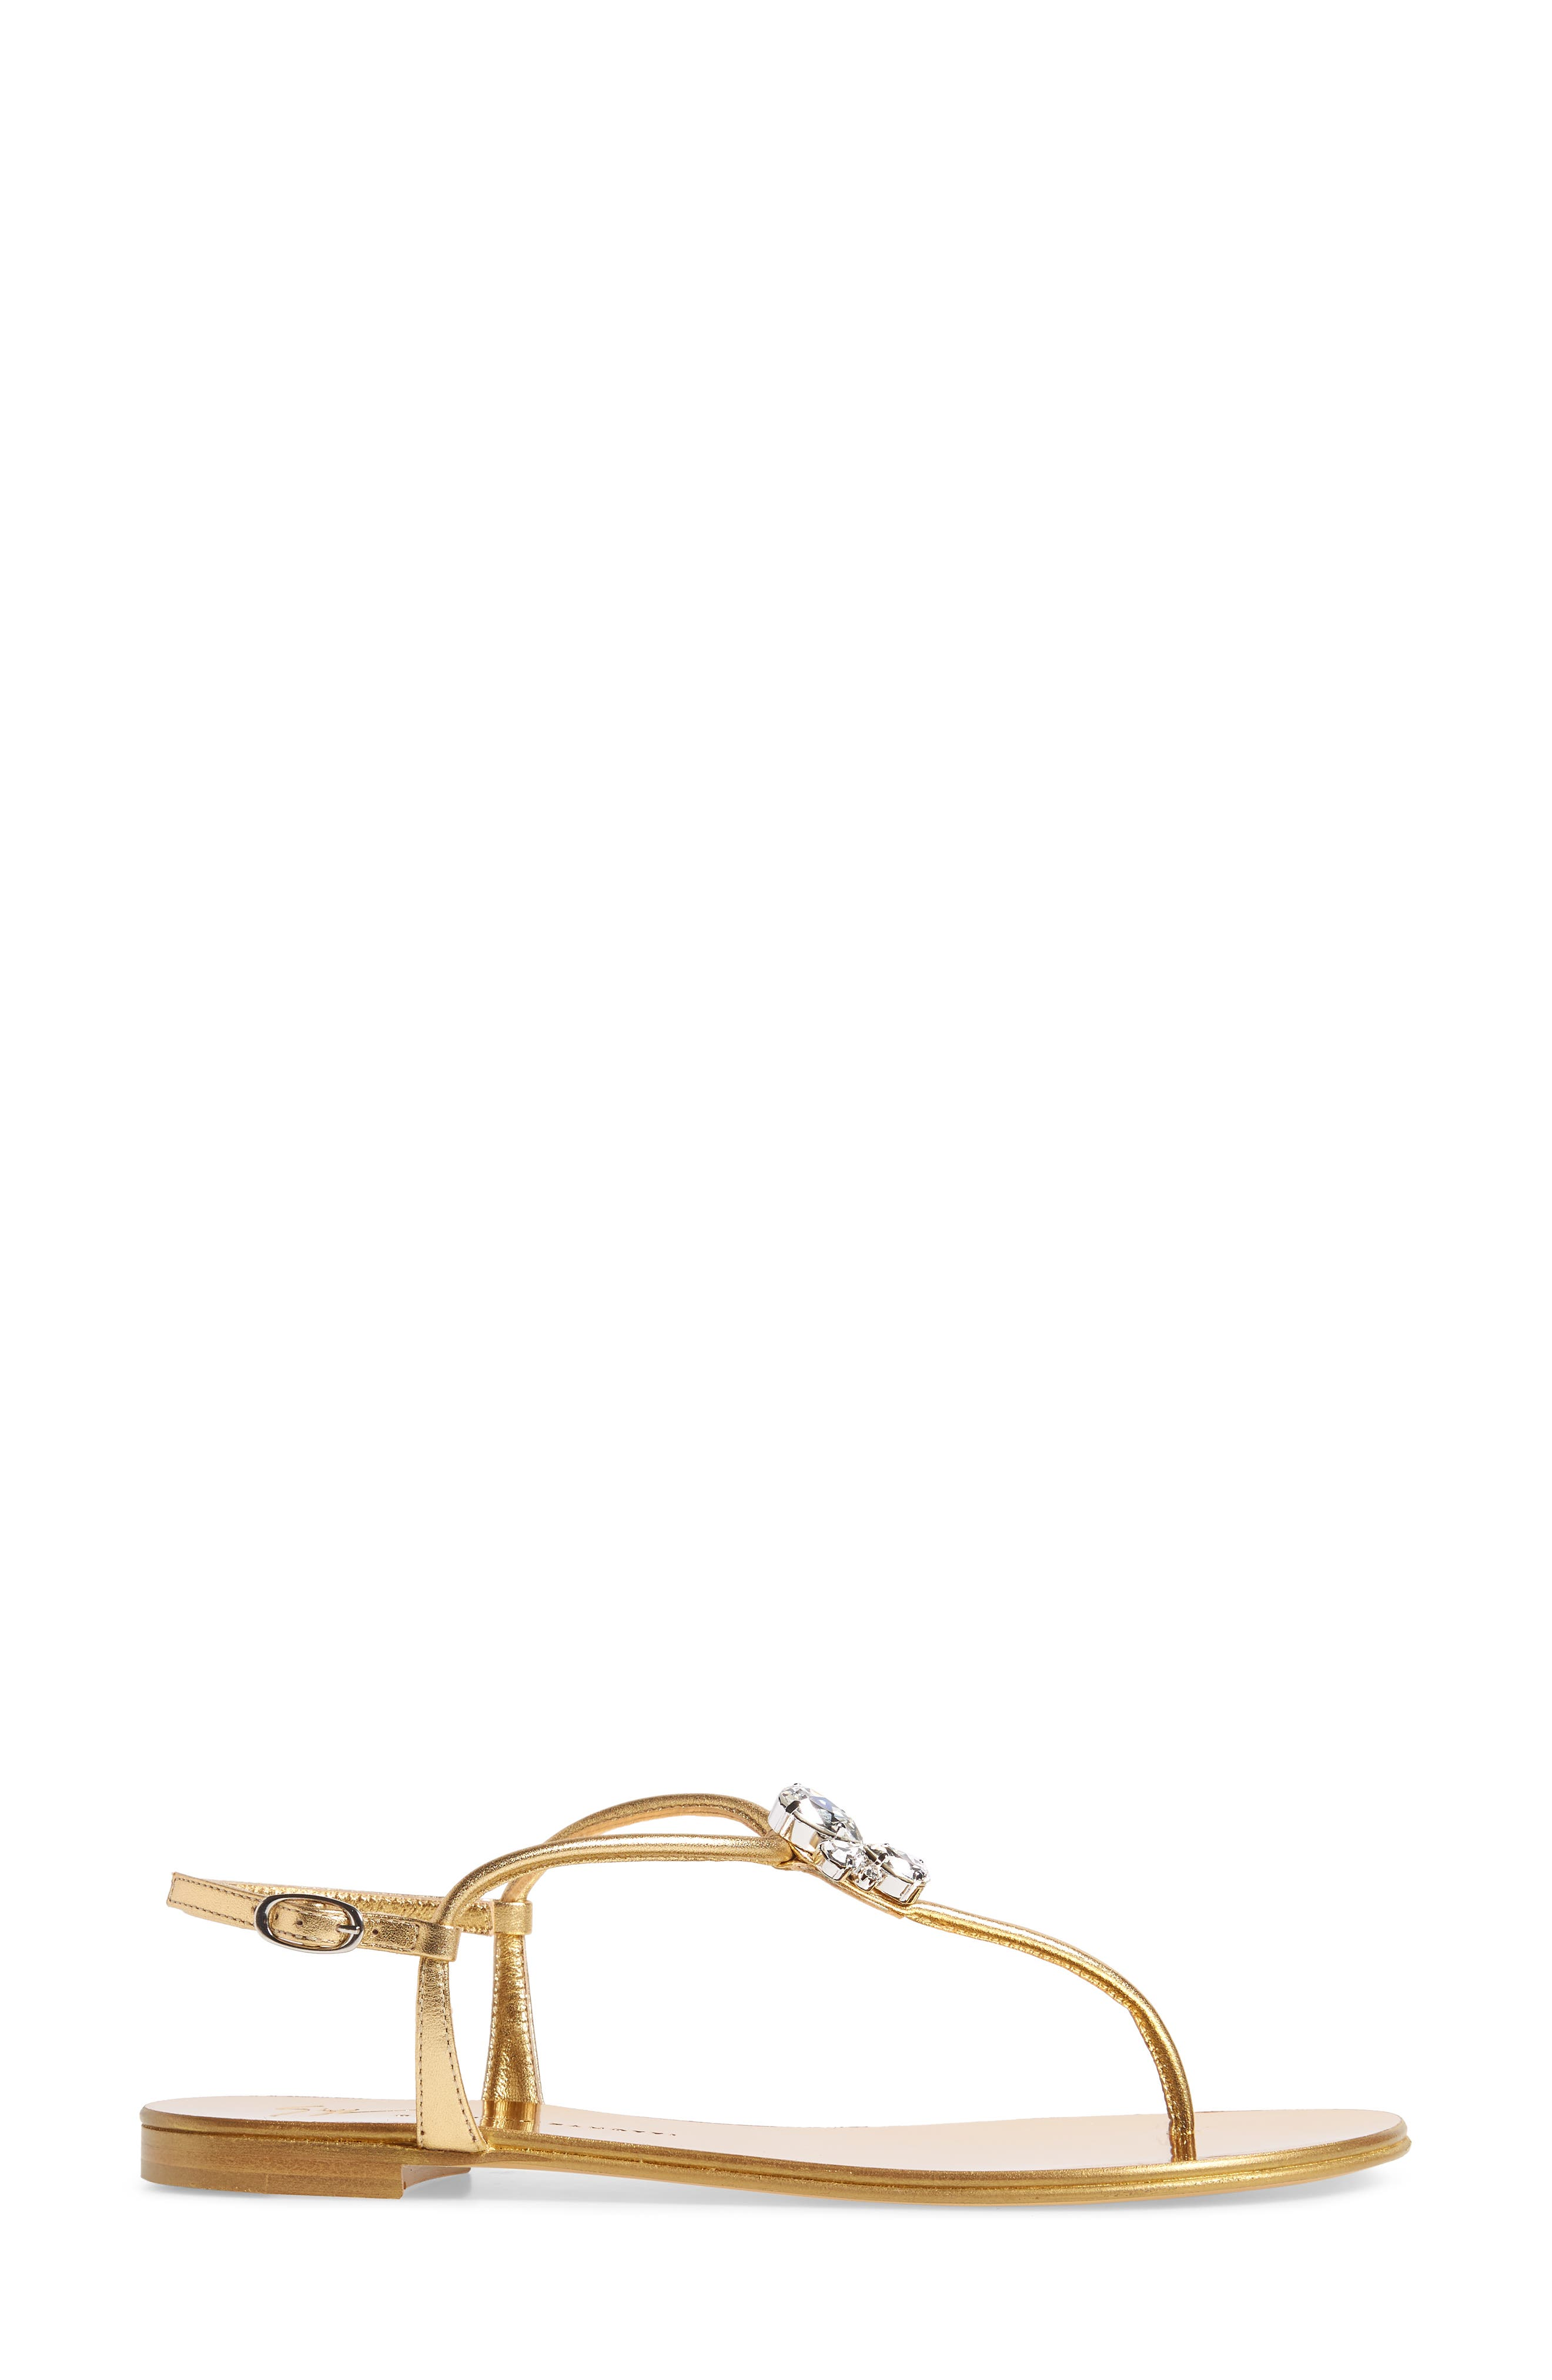 Crystal T-Strap Sandal,                             Alternate thumbnail 3, color,                             GOLD